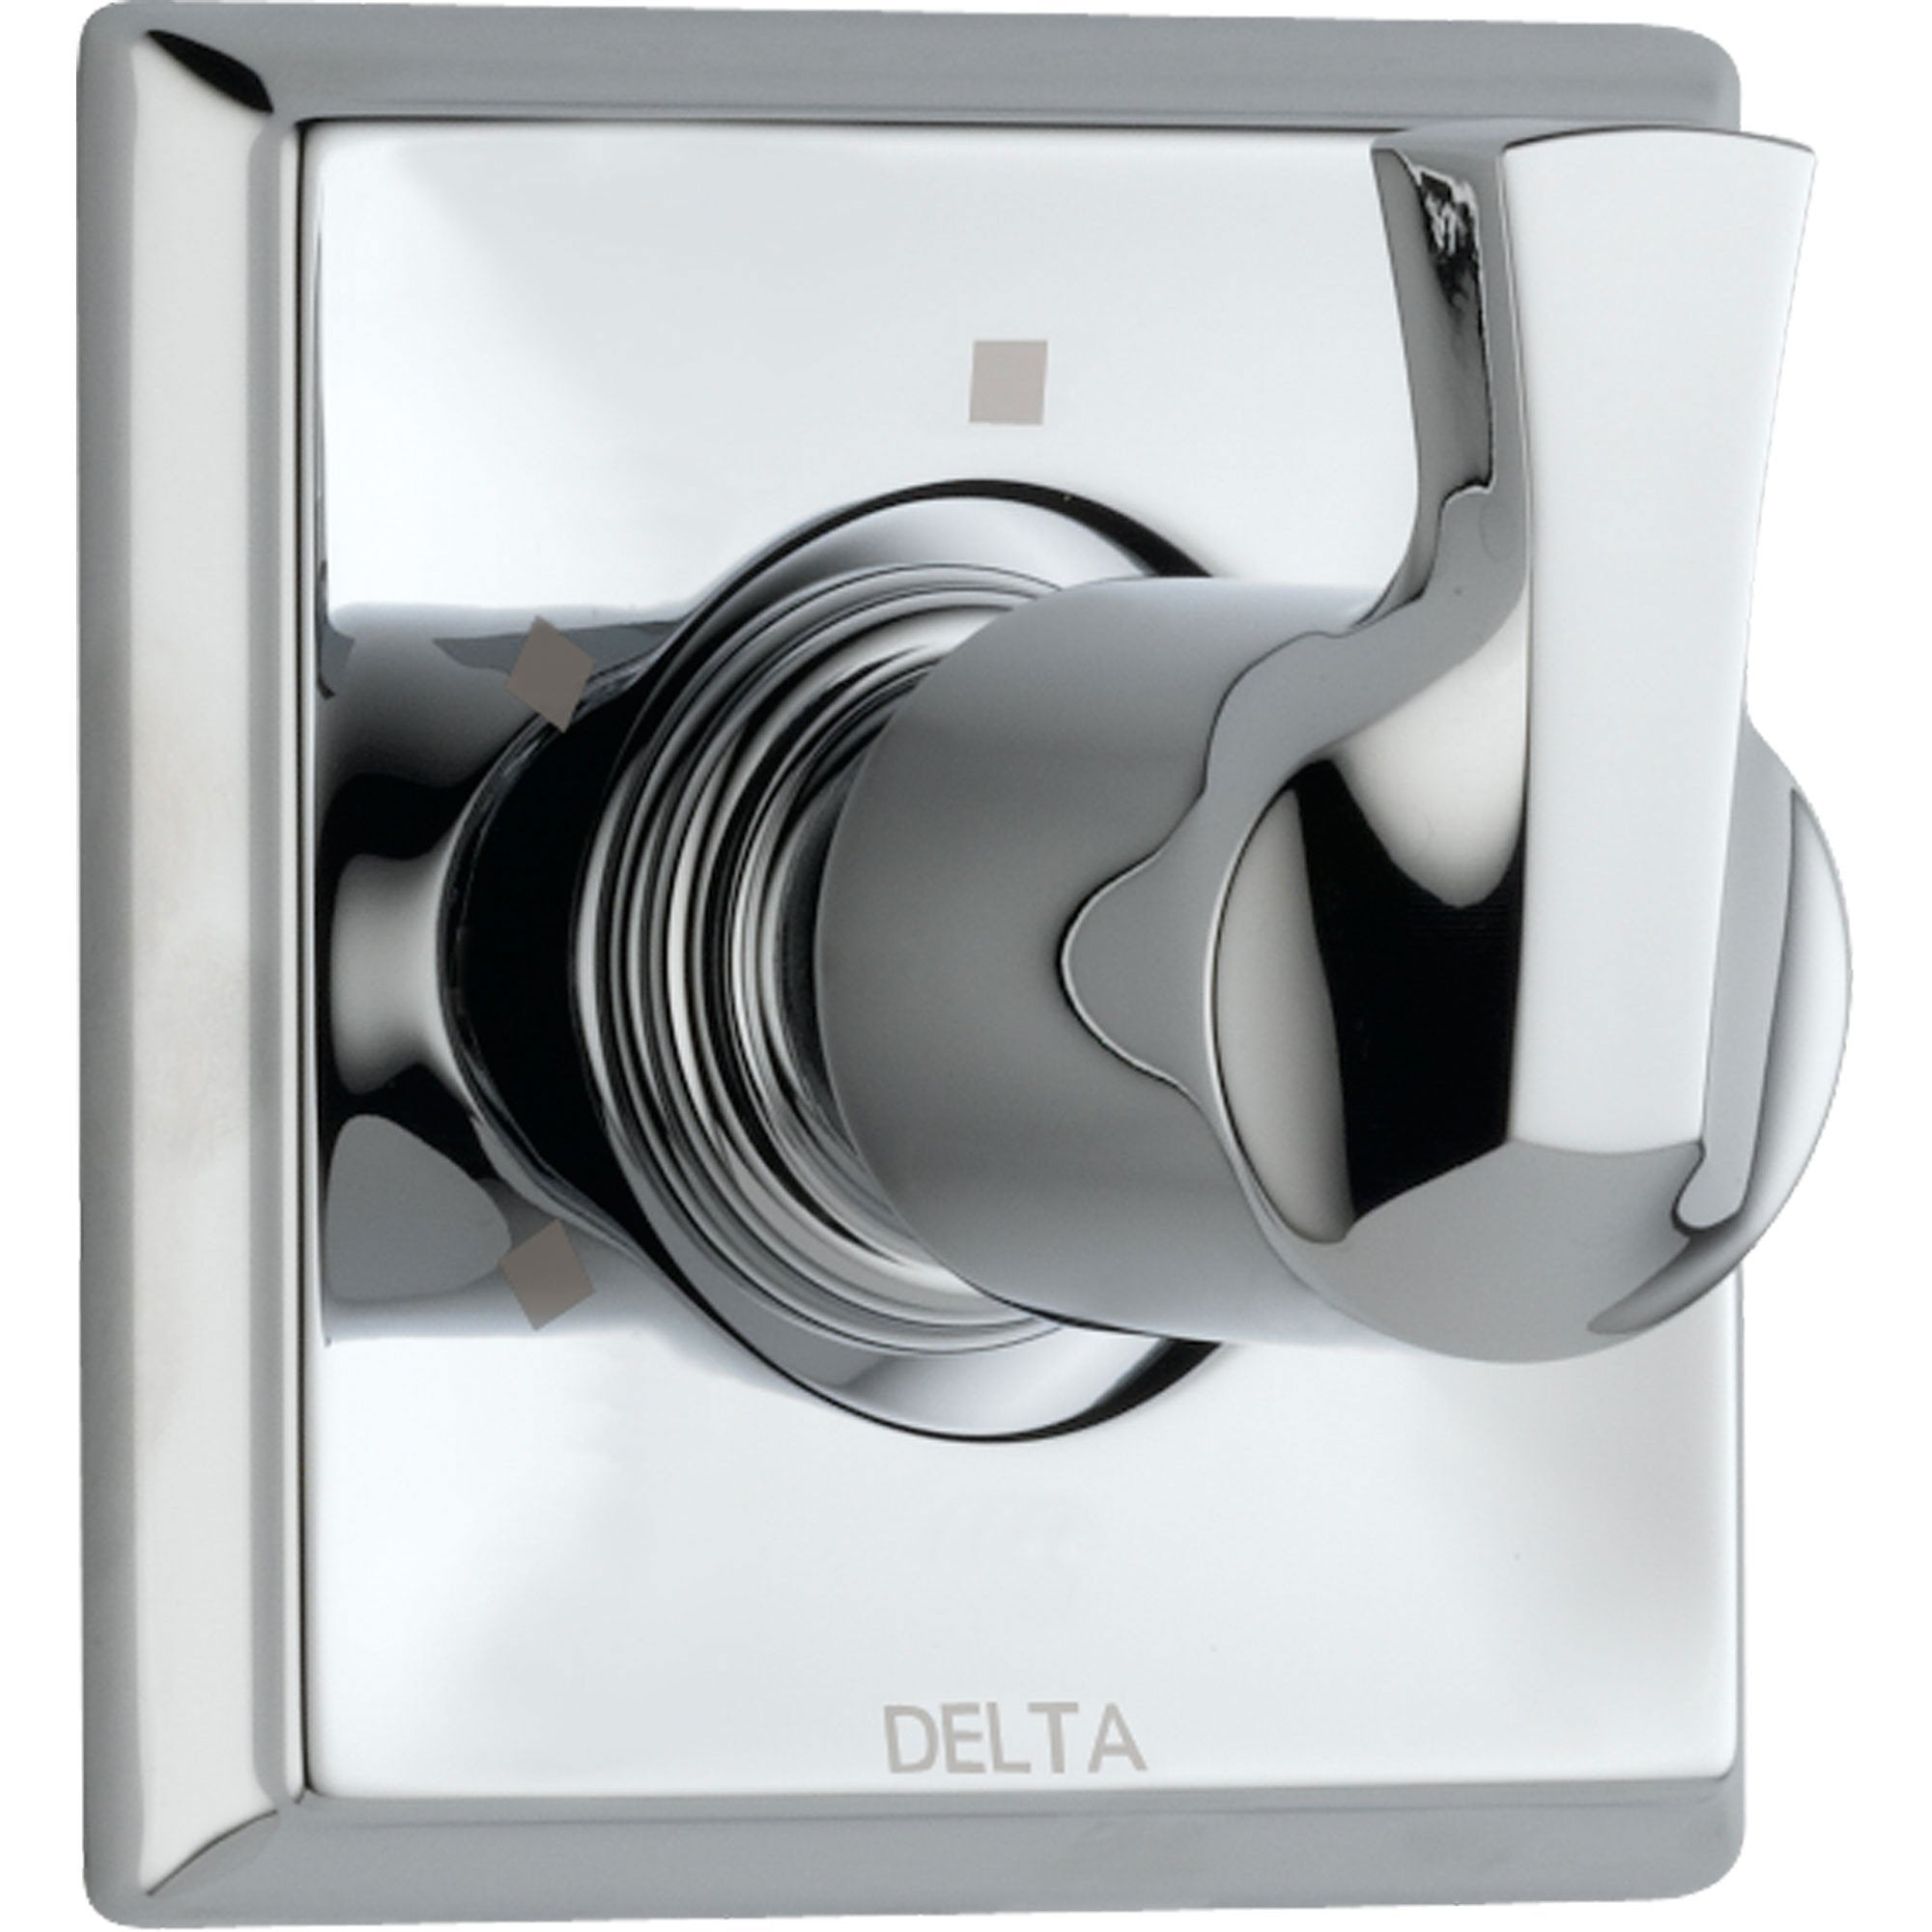 Delta 3-Setting Modern Chrome Shower Diverter Single Handle Trim Kit 560968